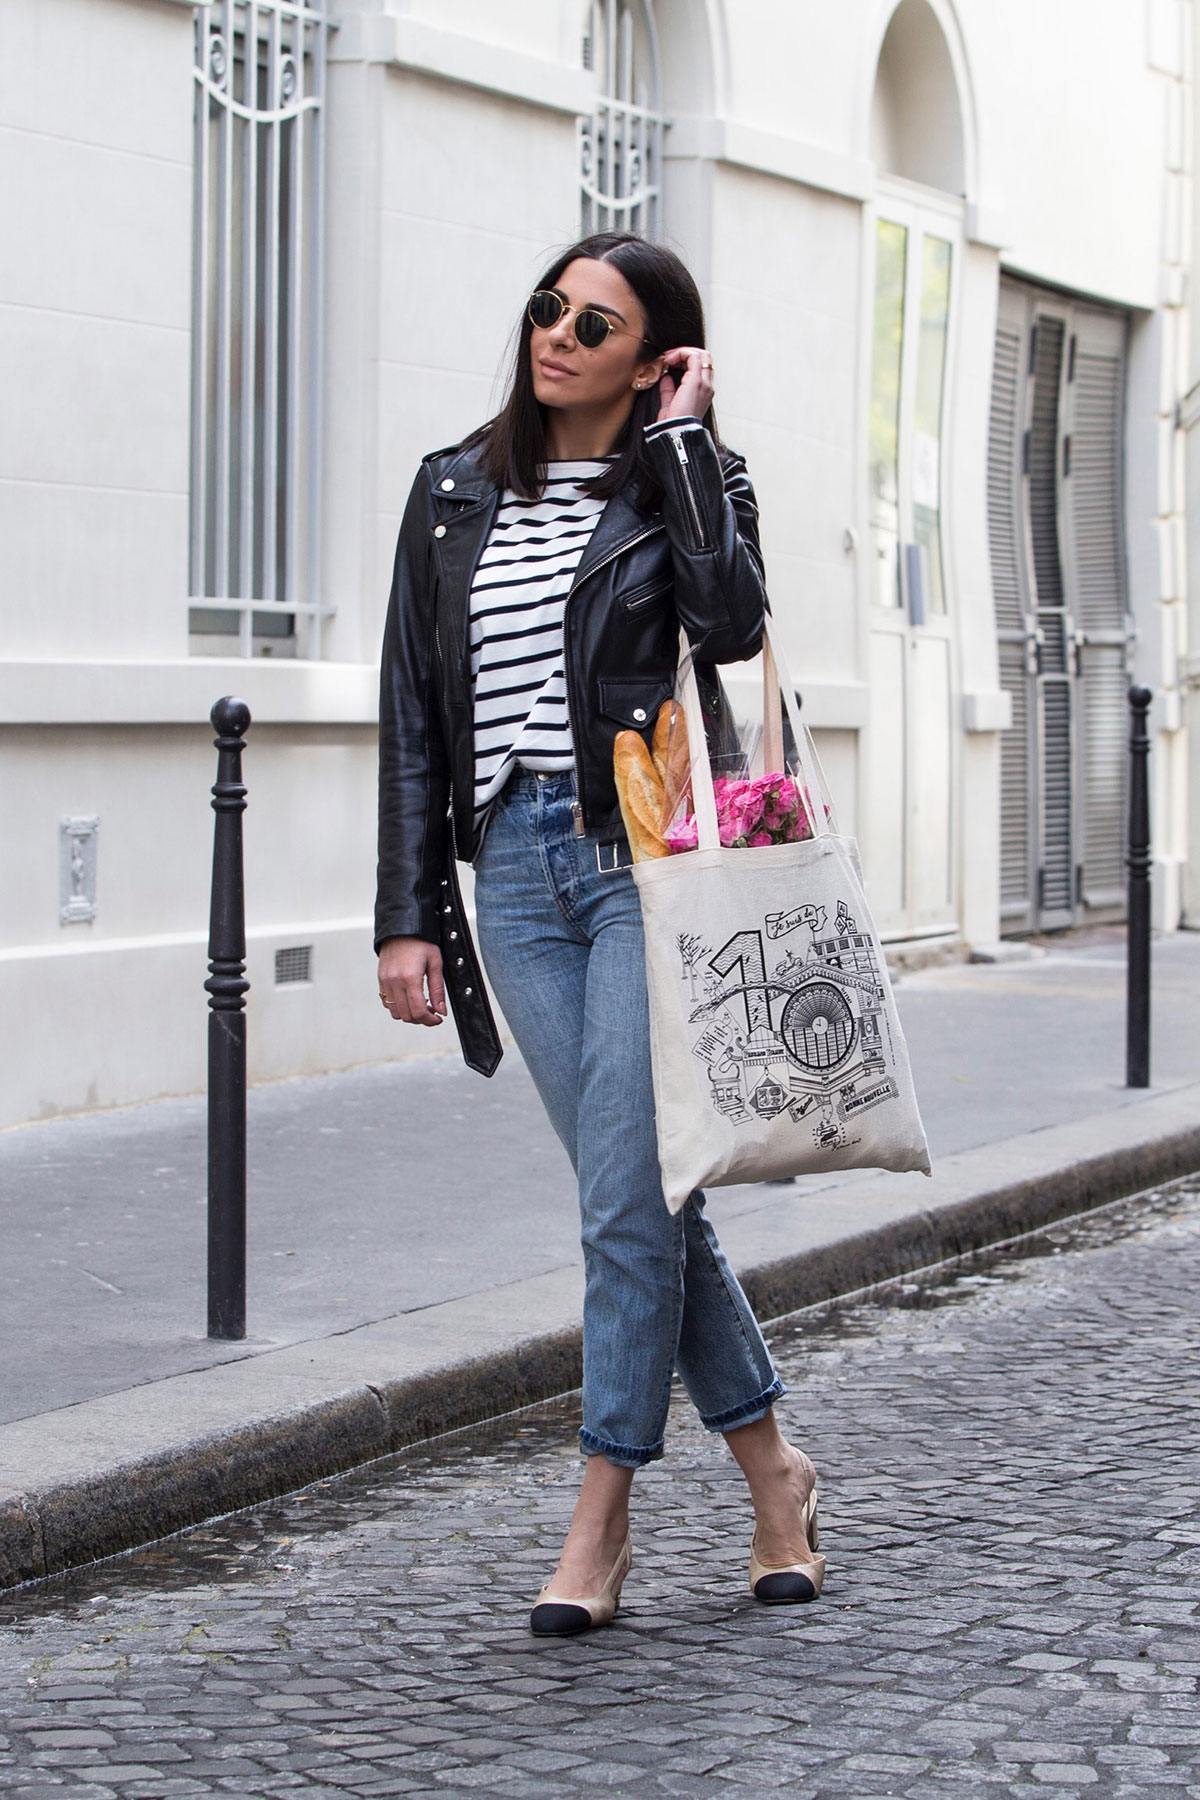 Channeling My Inner Parisian With Breton Stripe Top & Jeans